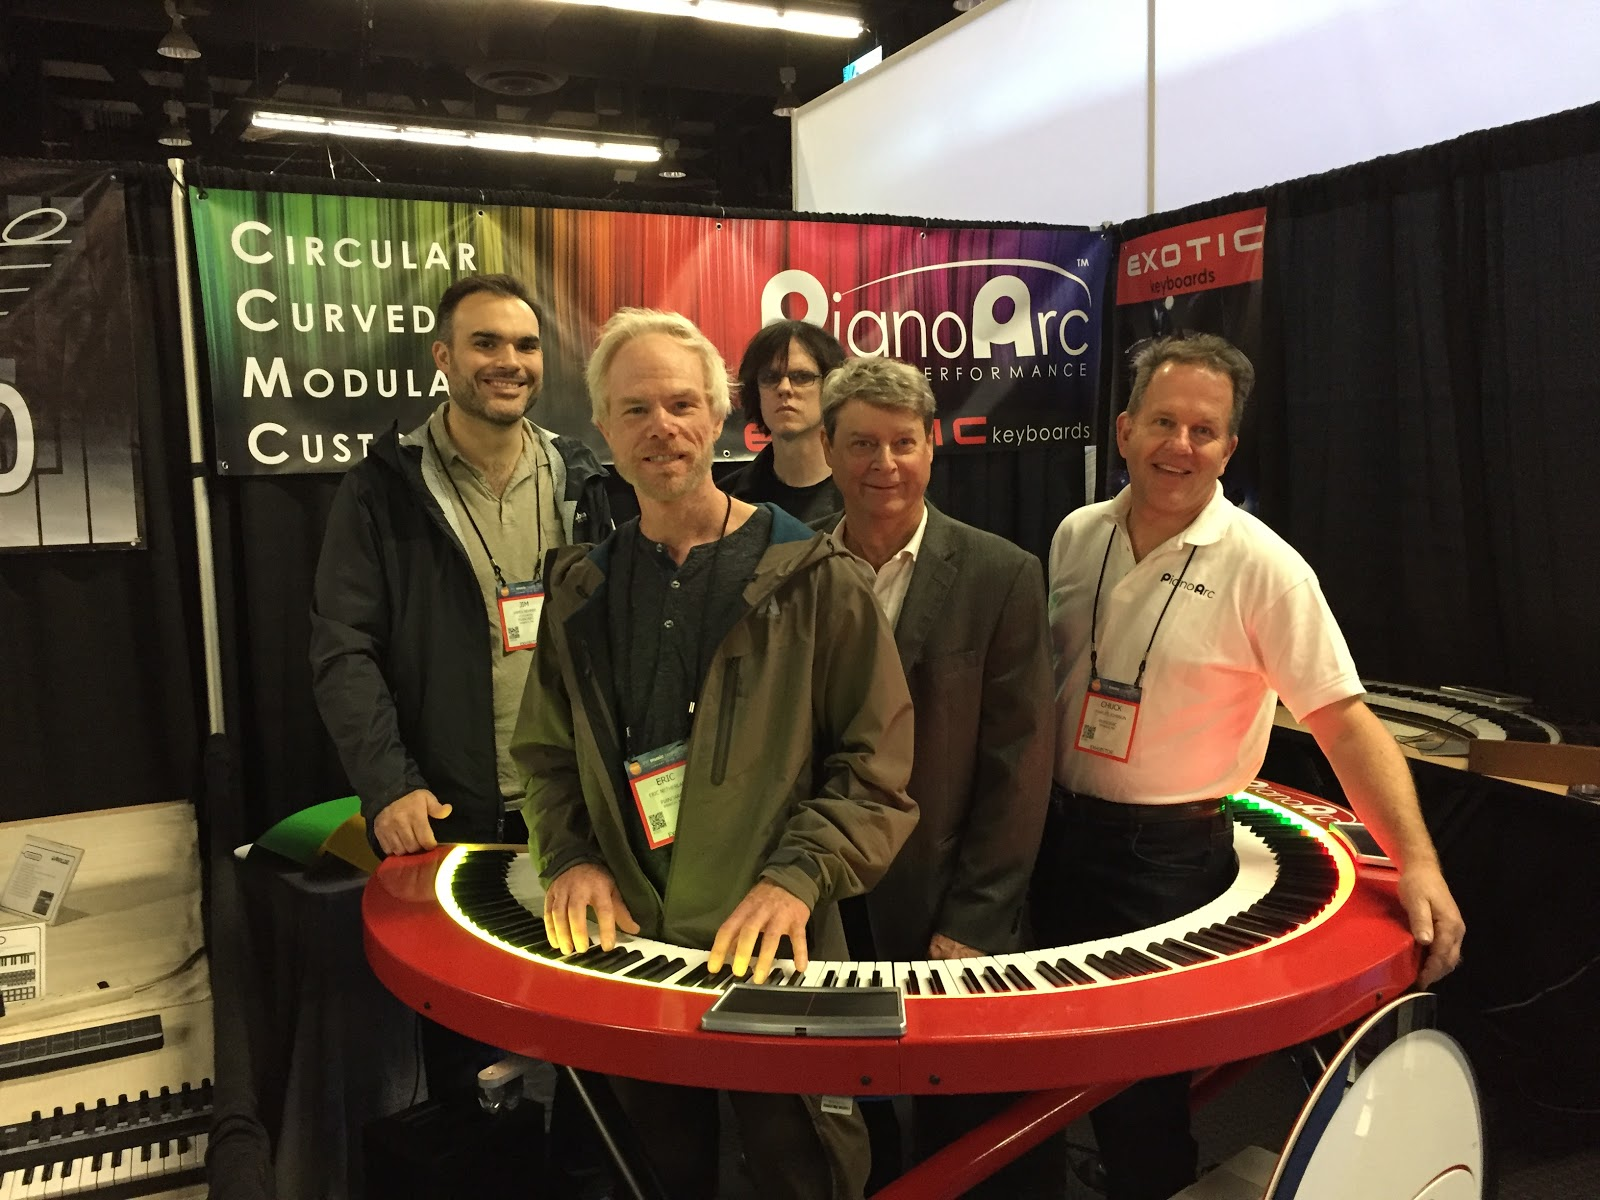 Pianoarc team at trade show